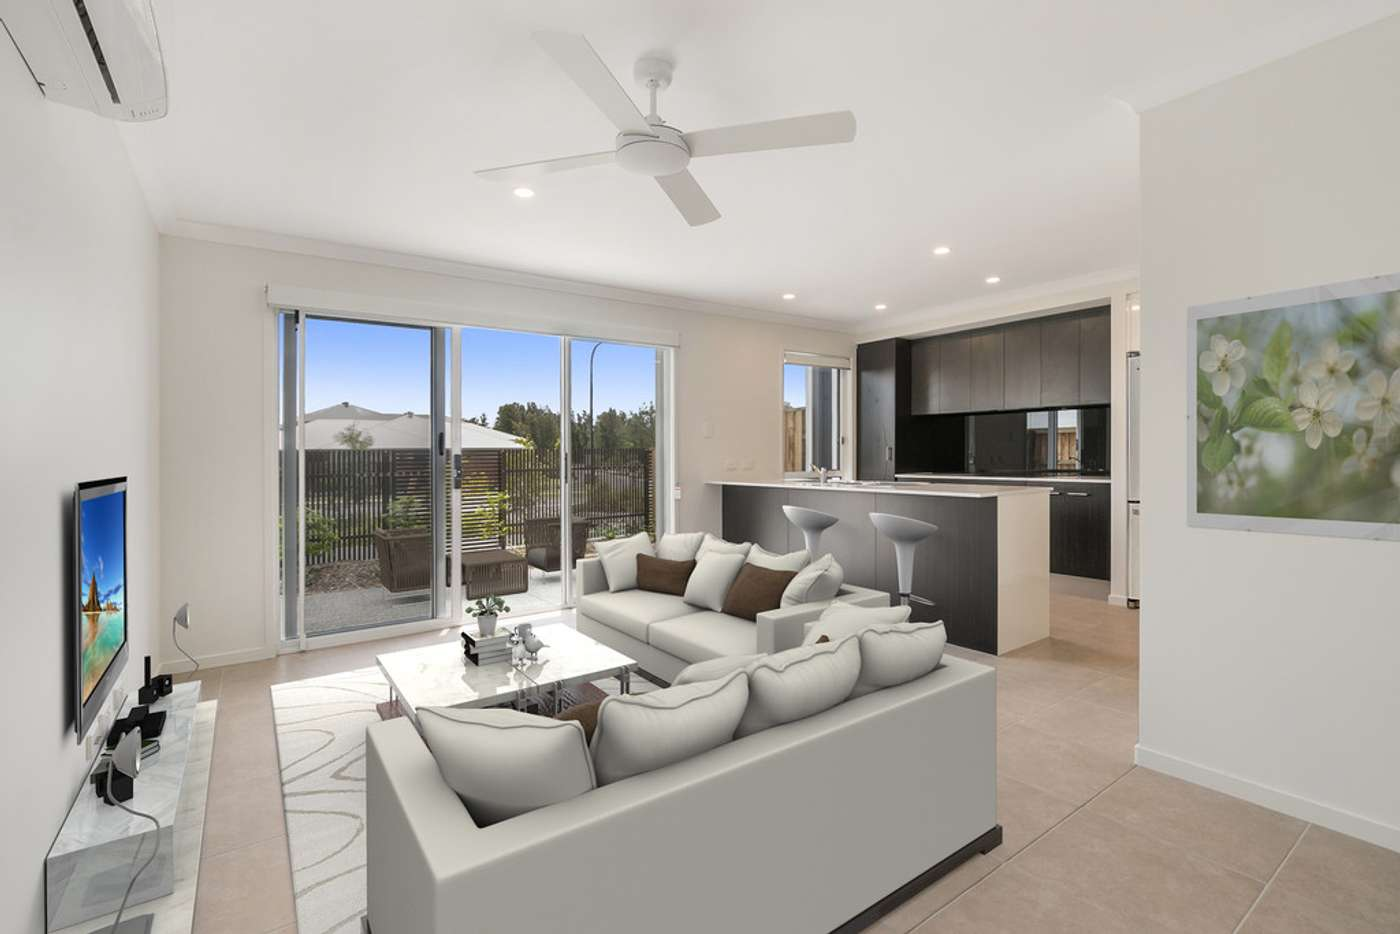 Fifth view of Homely townhouse listing, 91 370 GAINSBOROUGH DRIVE, Pimpama QLD 4209